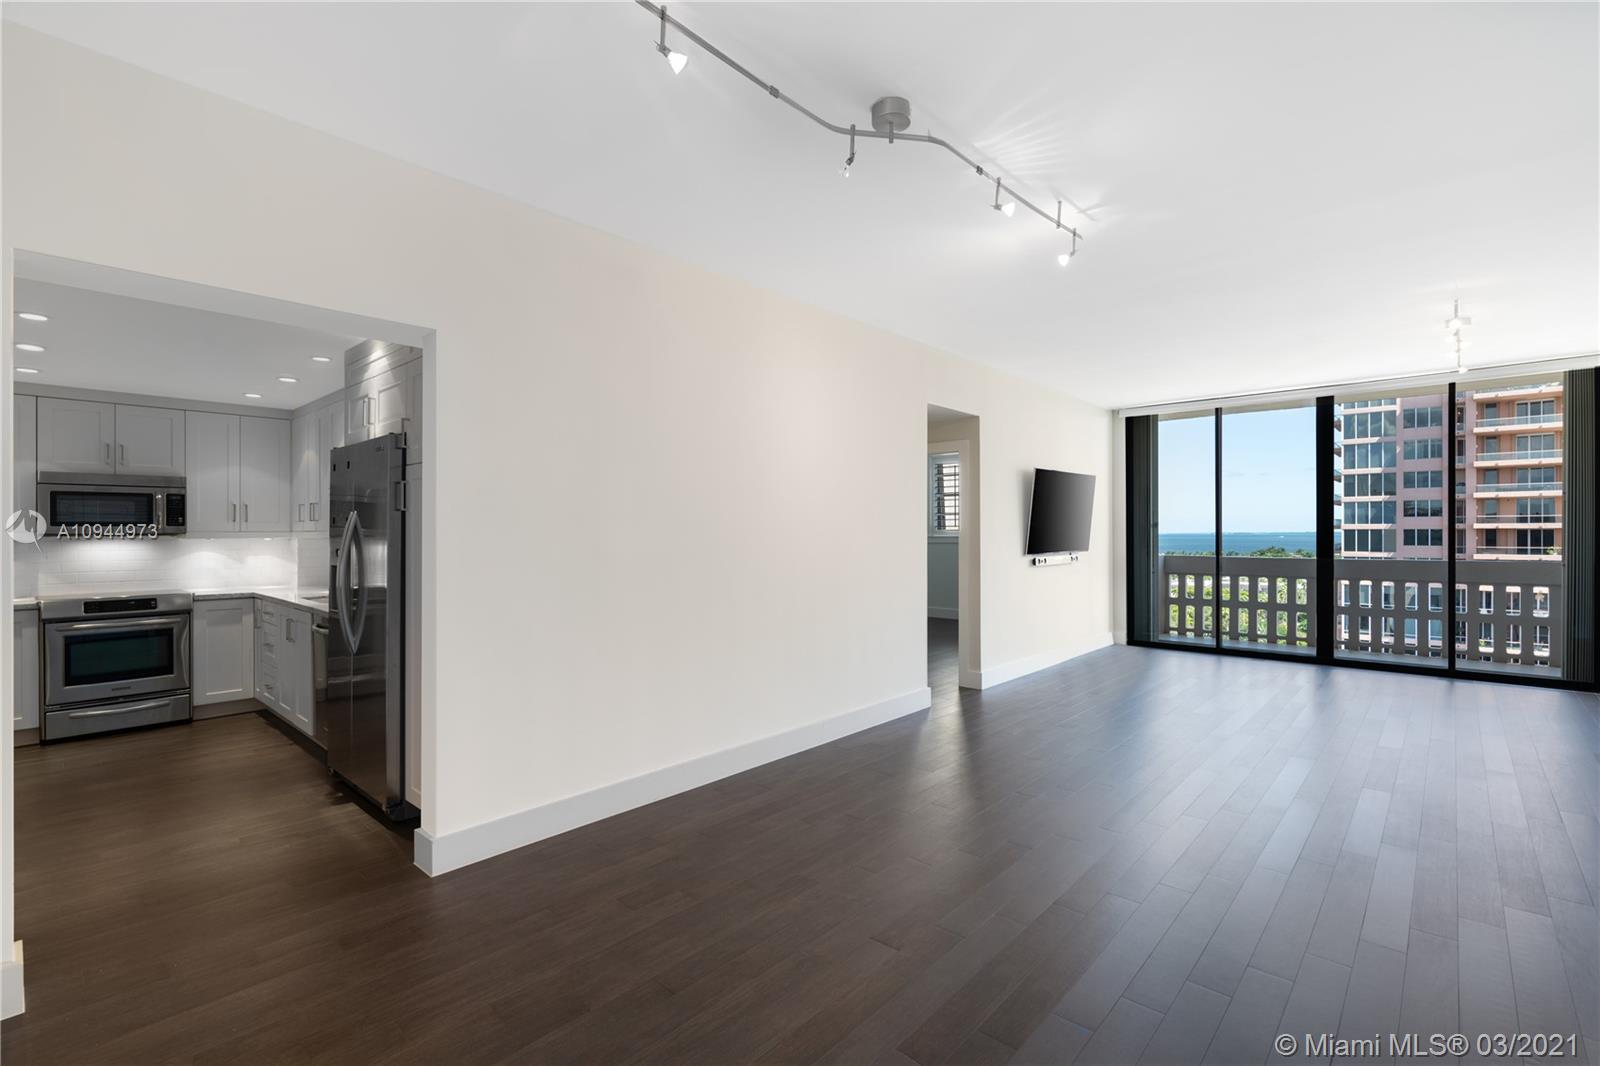 90 Edgewater Dr, Coral Gables, Florida 33133, 1 Bedroom Bedrooms, ,2 BathroomsBathrooms,Residential,For Sale,90 Edgewater Dr,A10944973